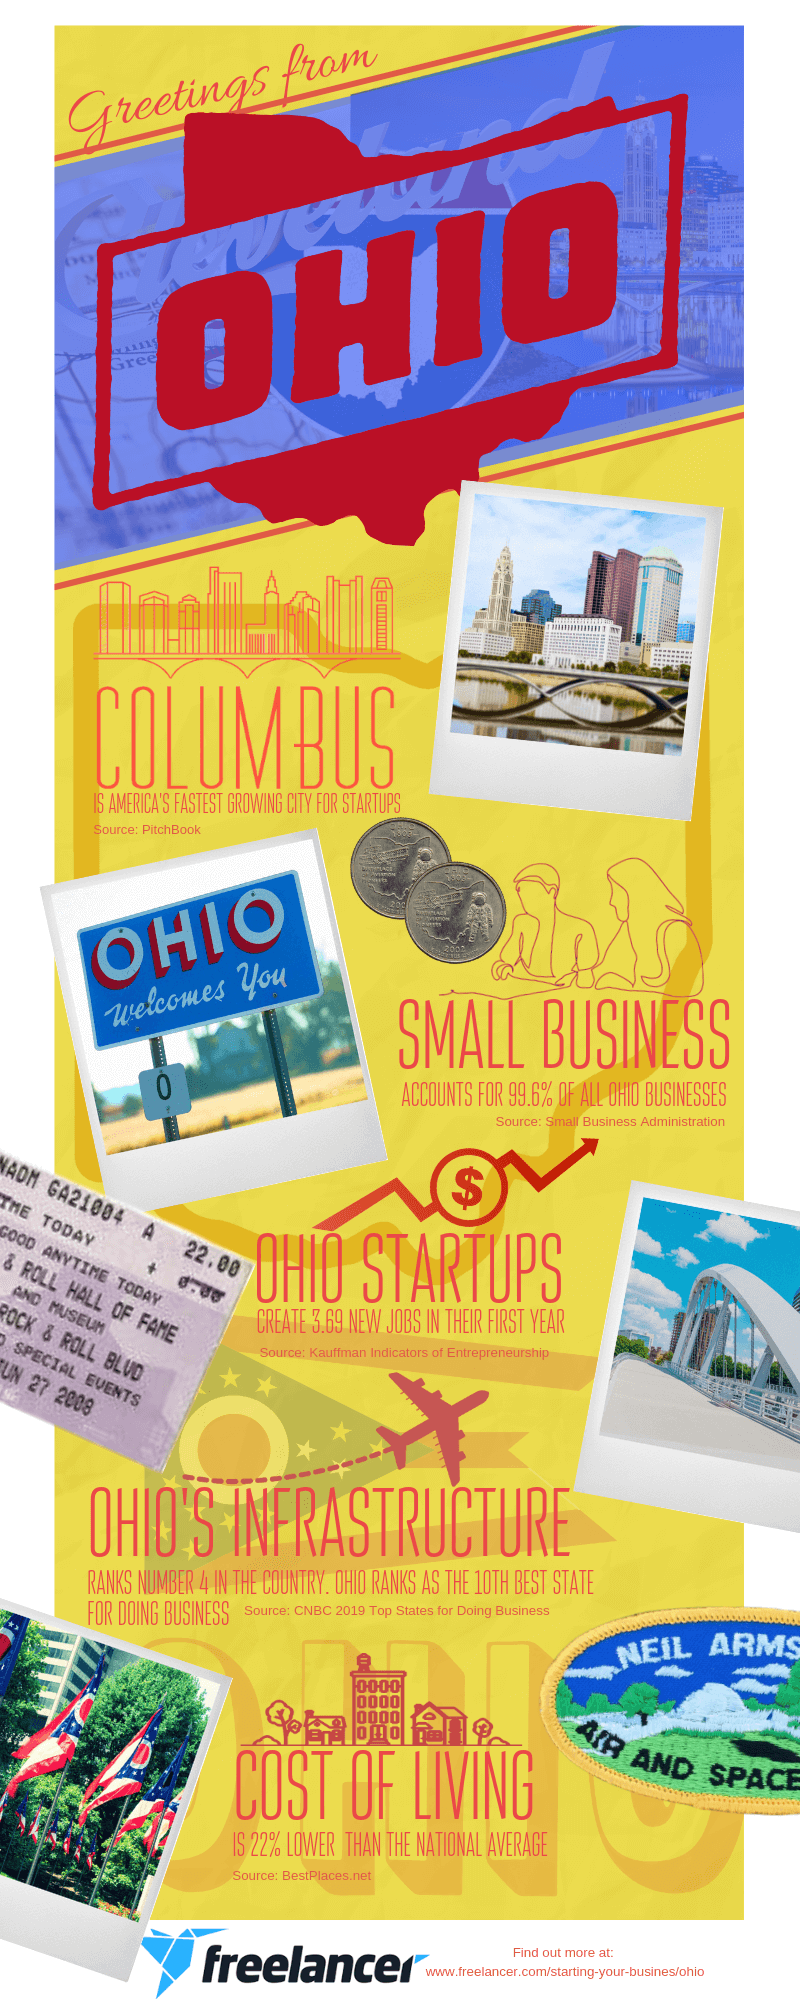 ohio small business startup statistics infographic